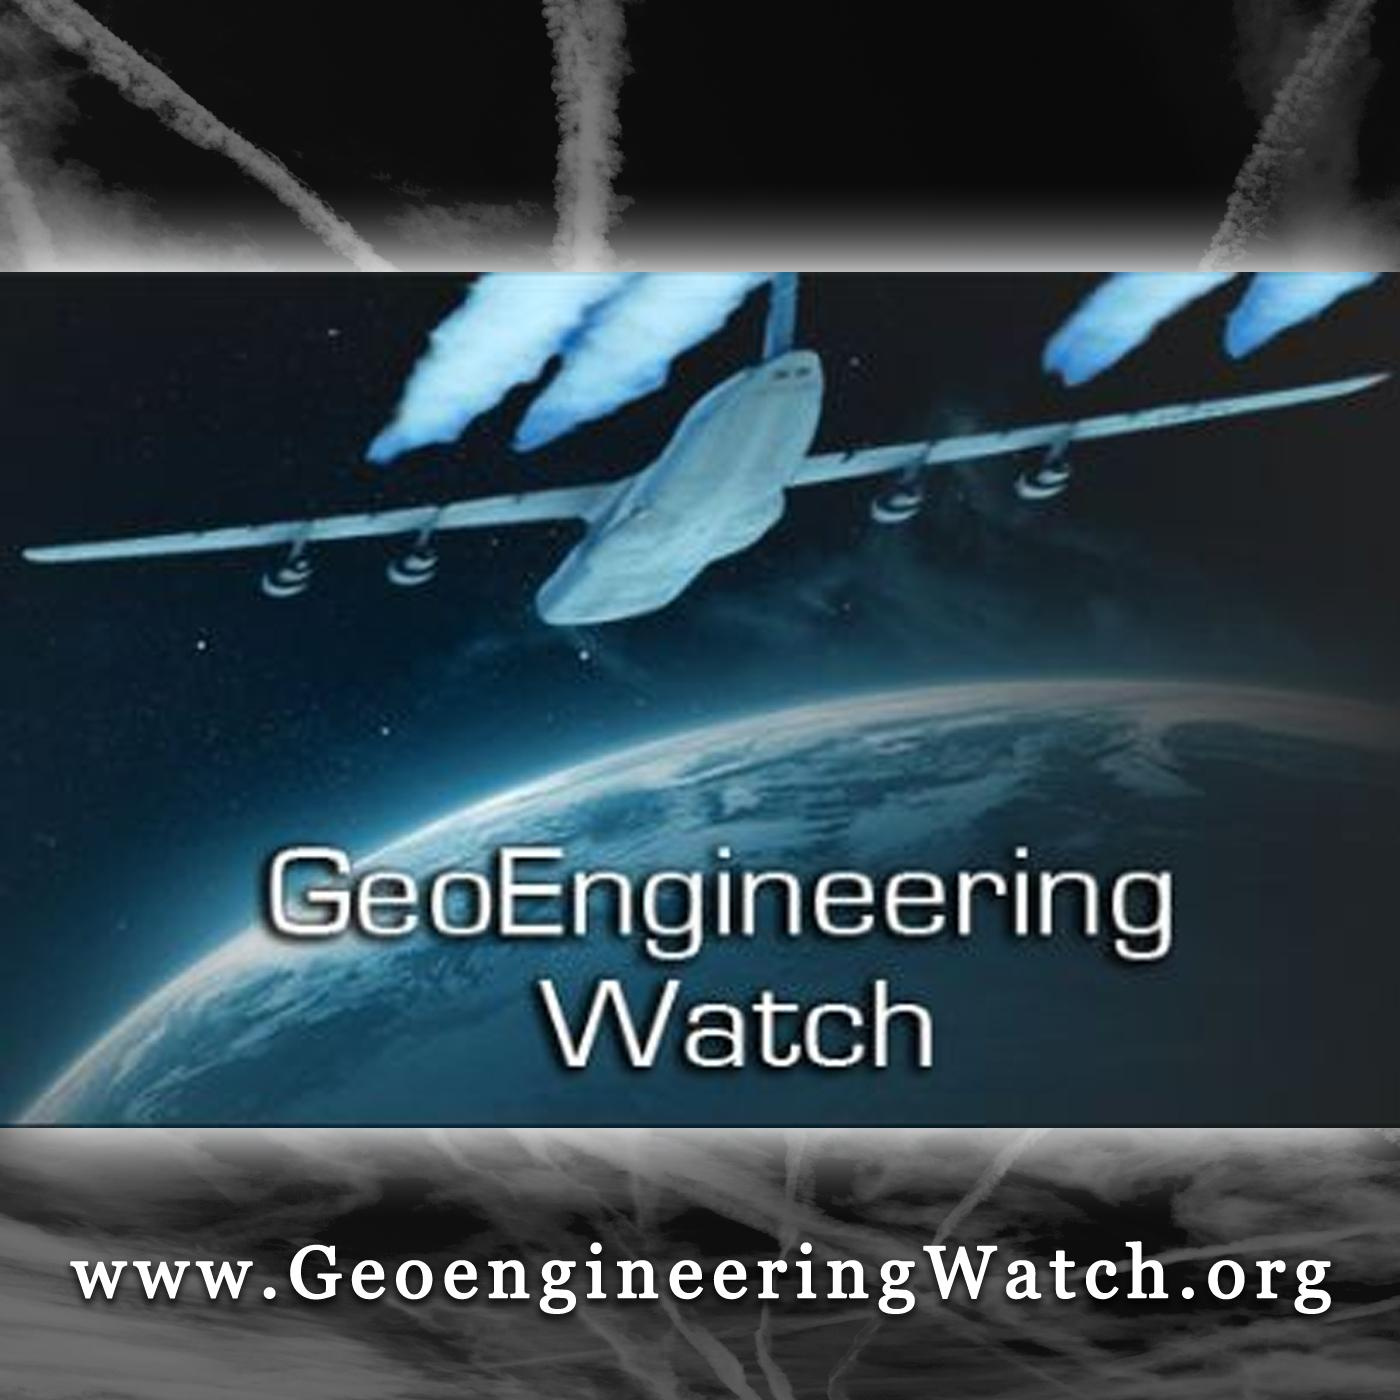 GeoengineeringWatch Global Alert